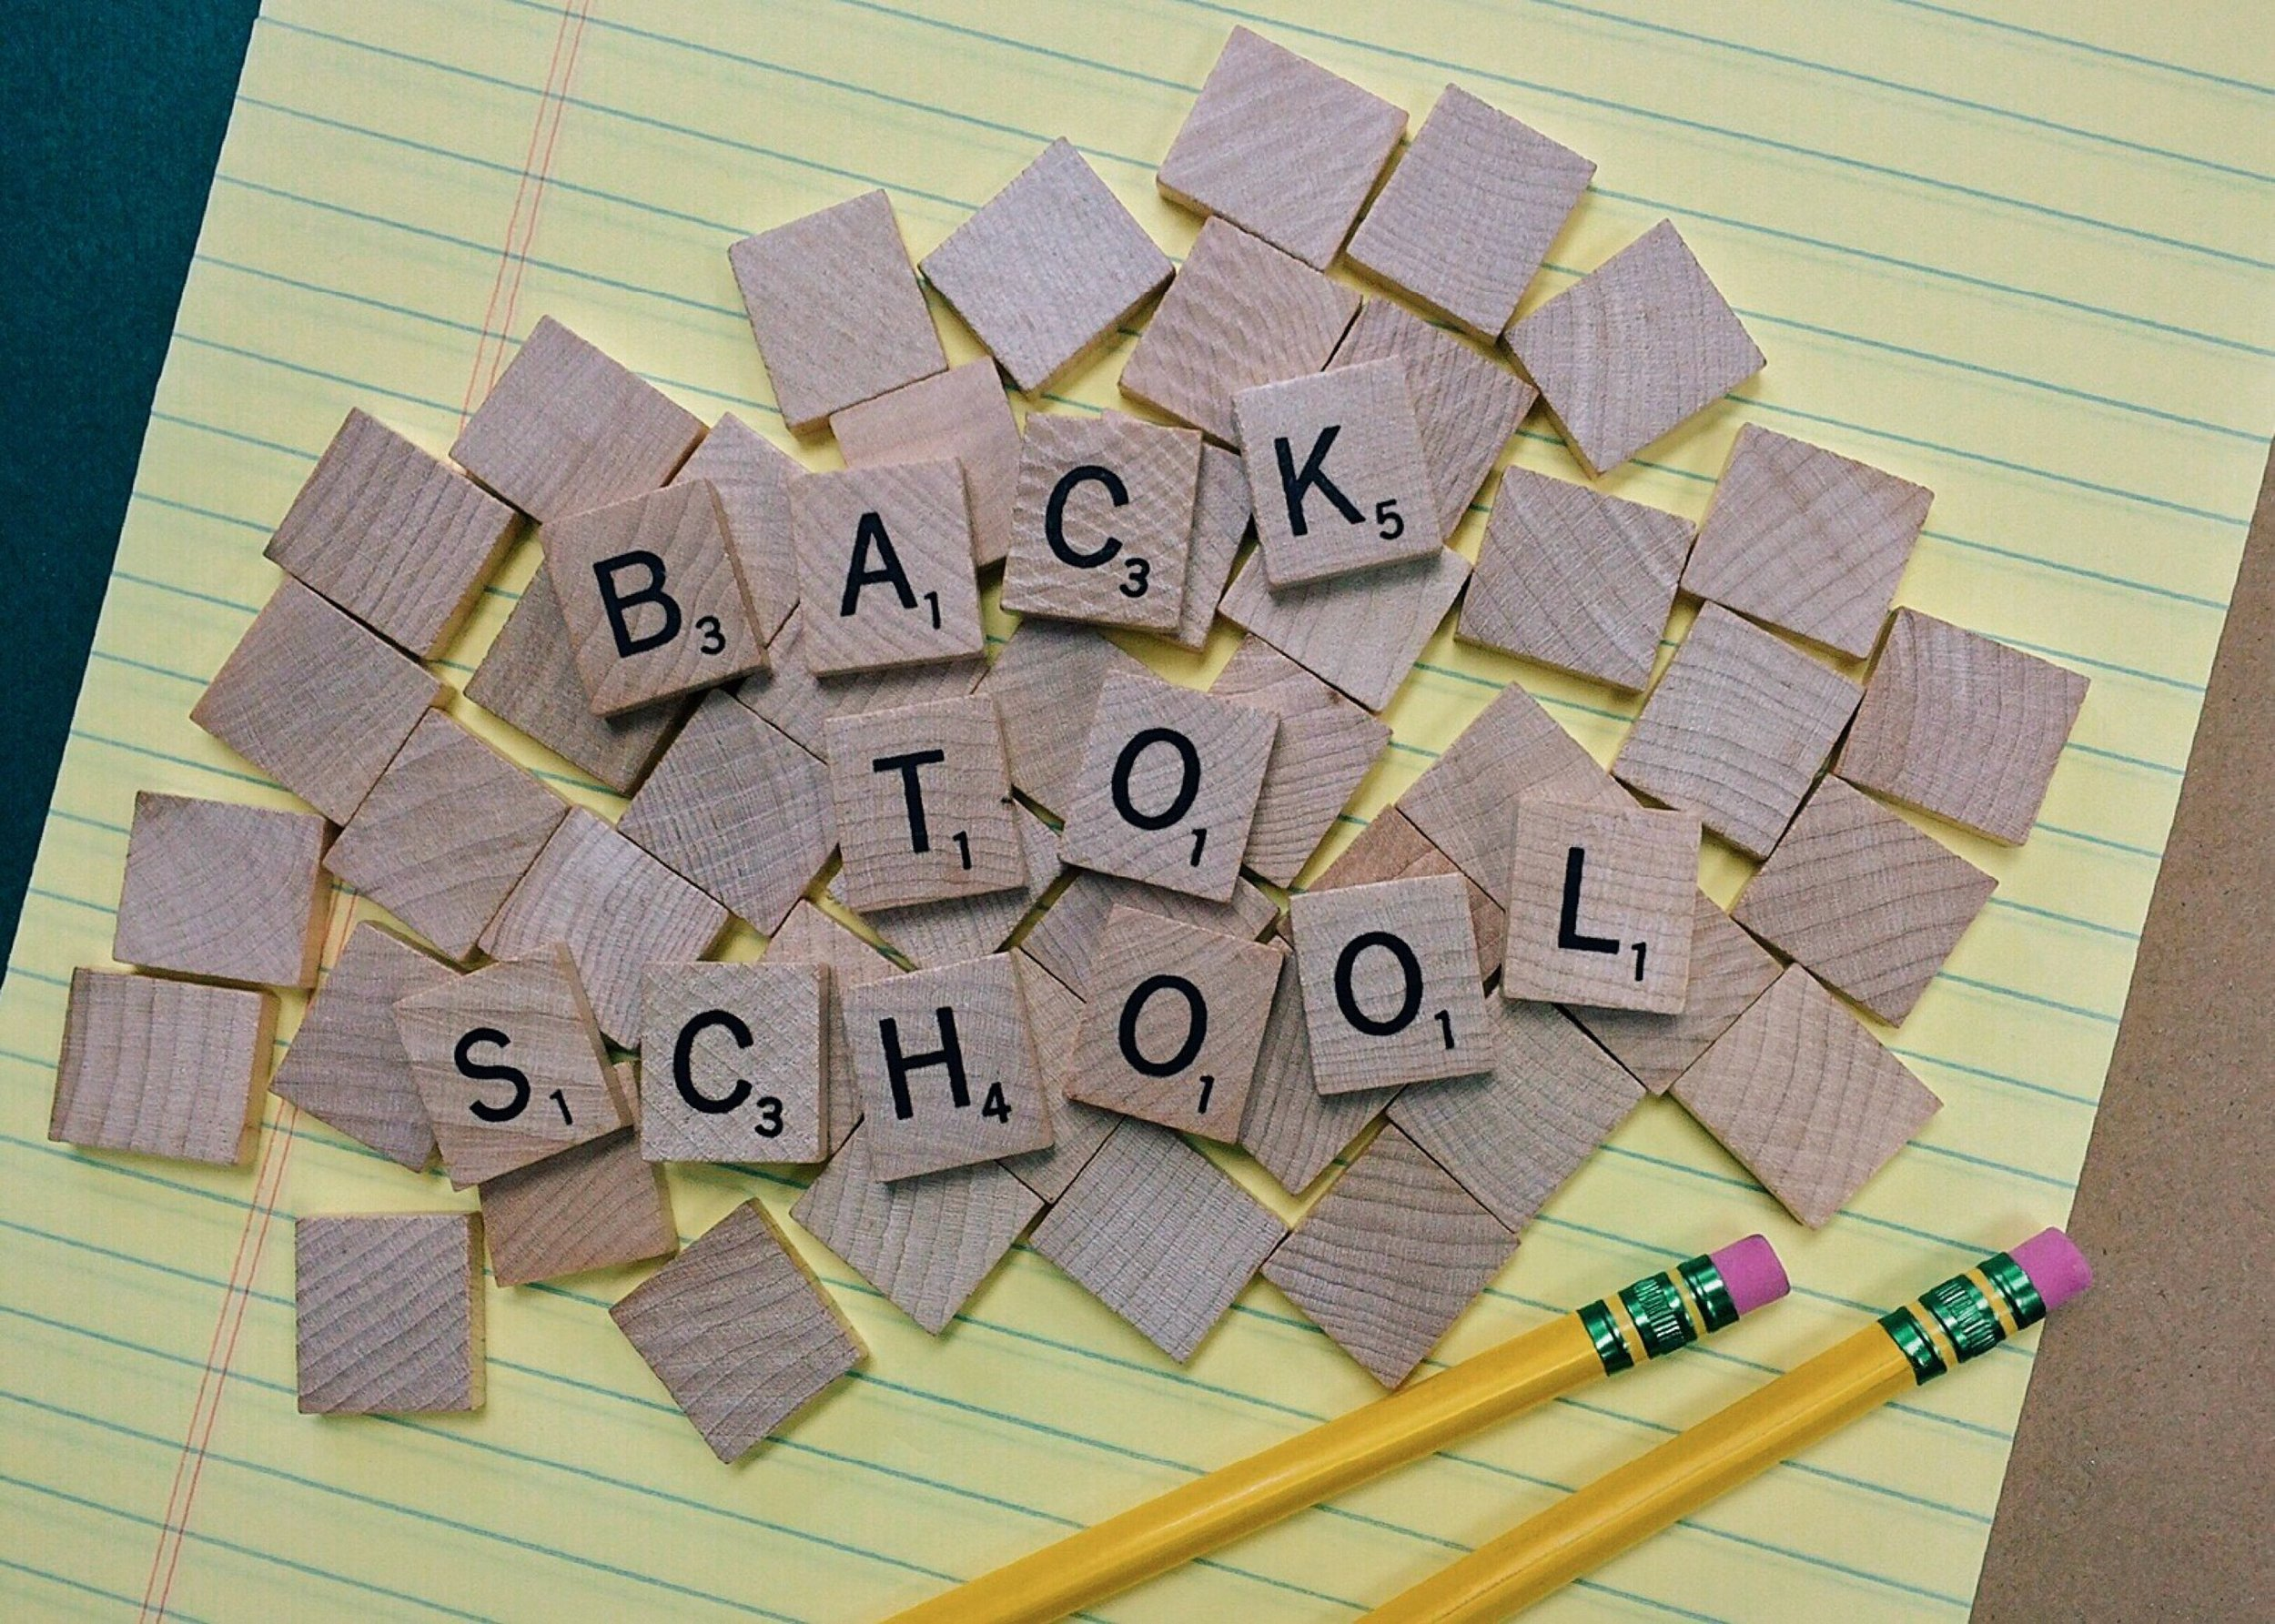 back-to-school-conceptual-cube-207658.jpg